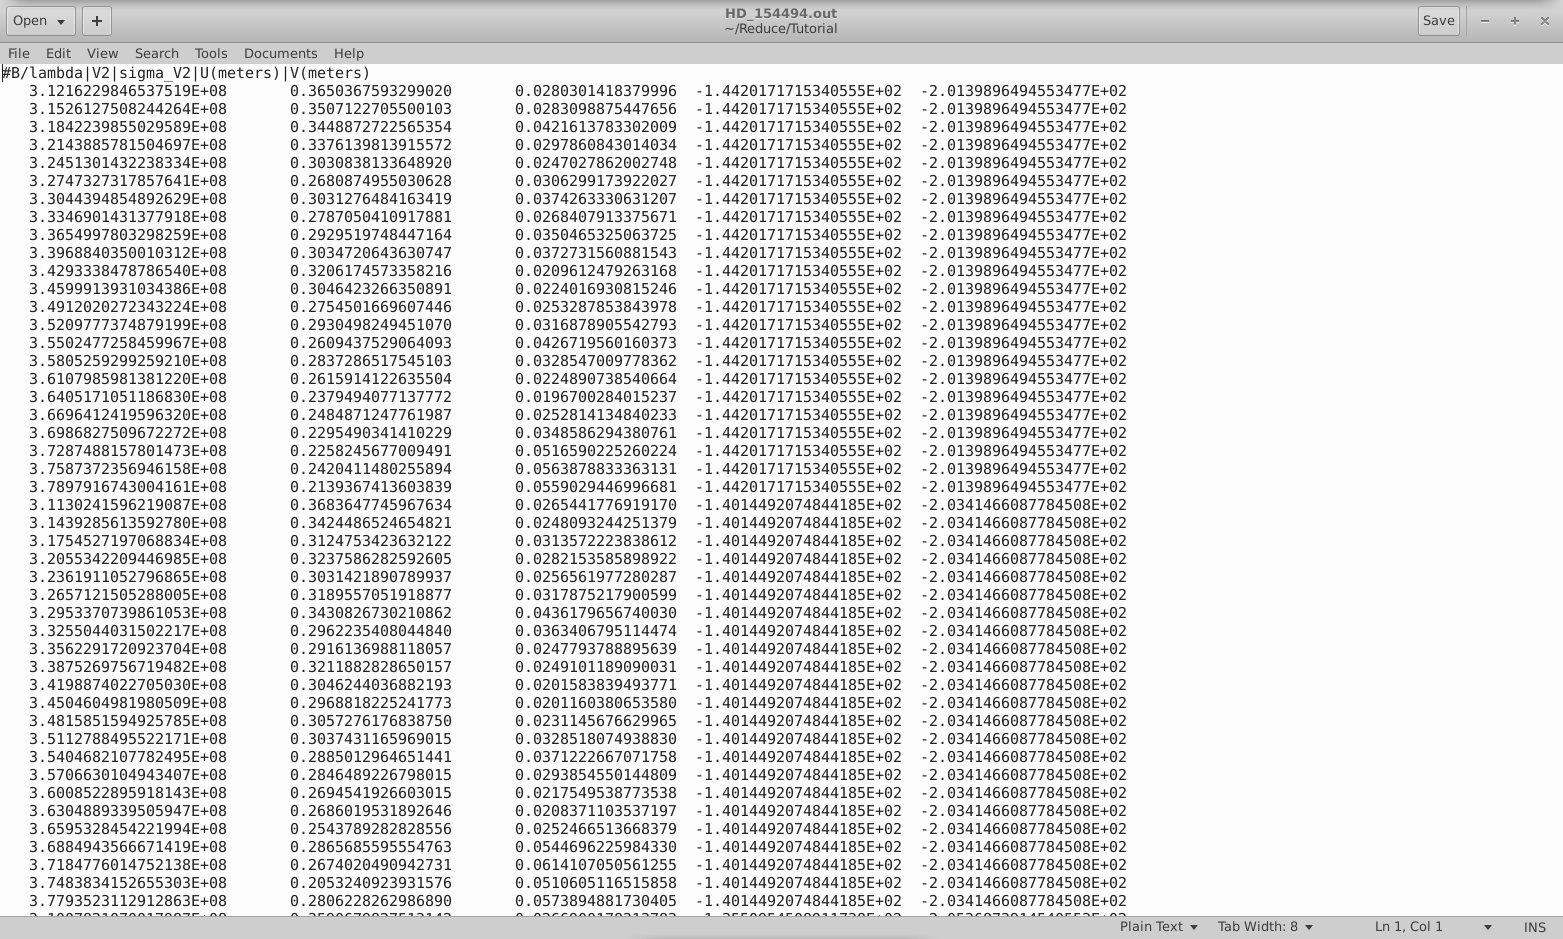 The text file output by l1_l2_gui.